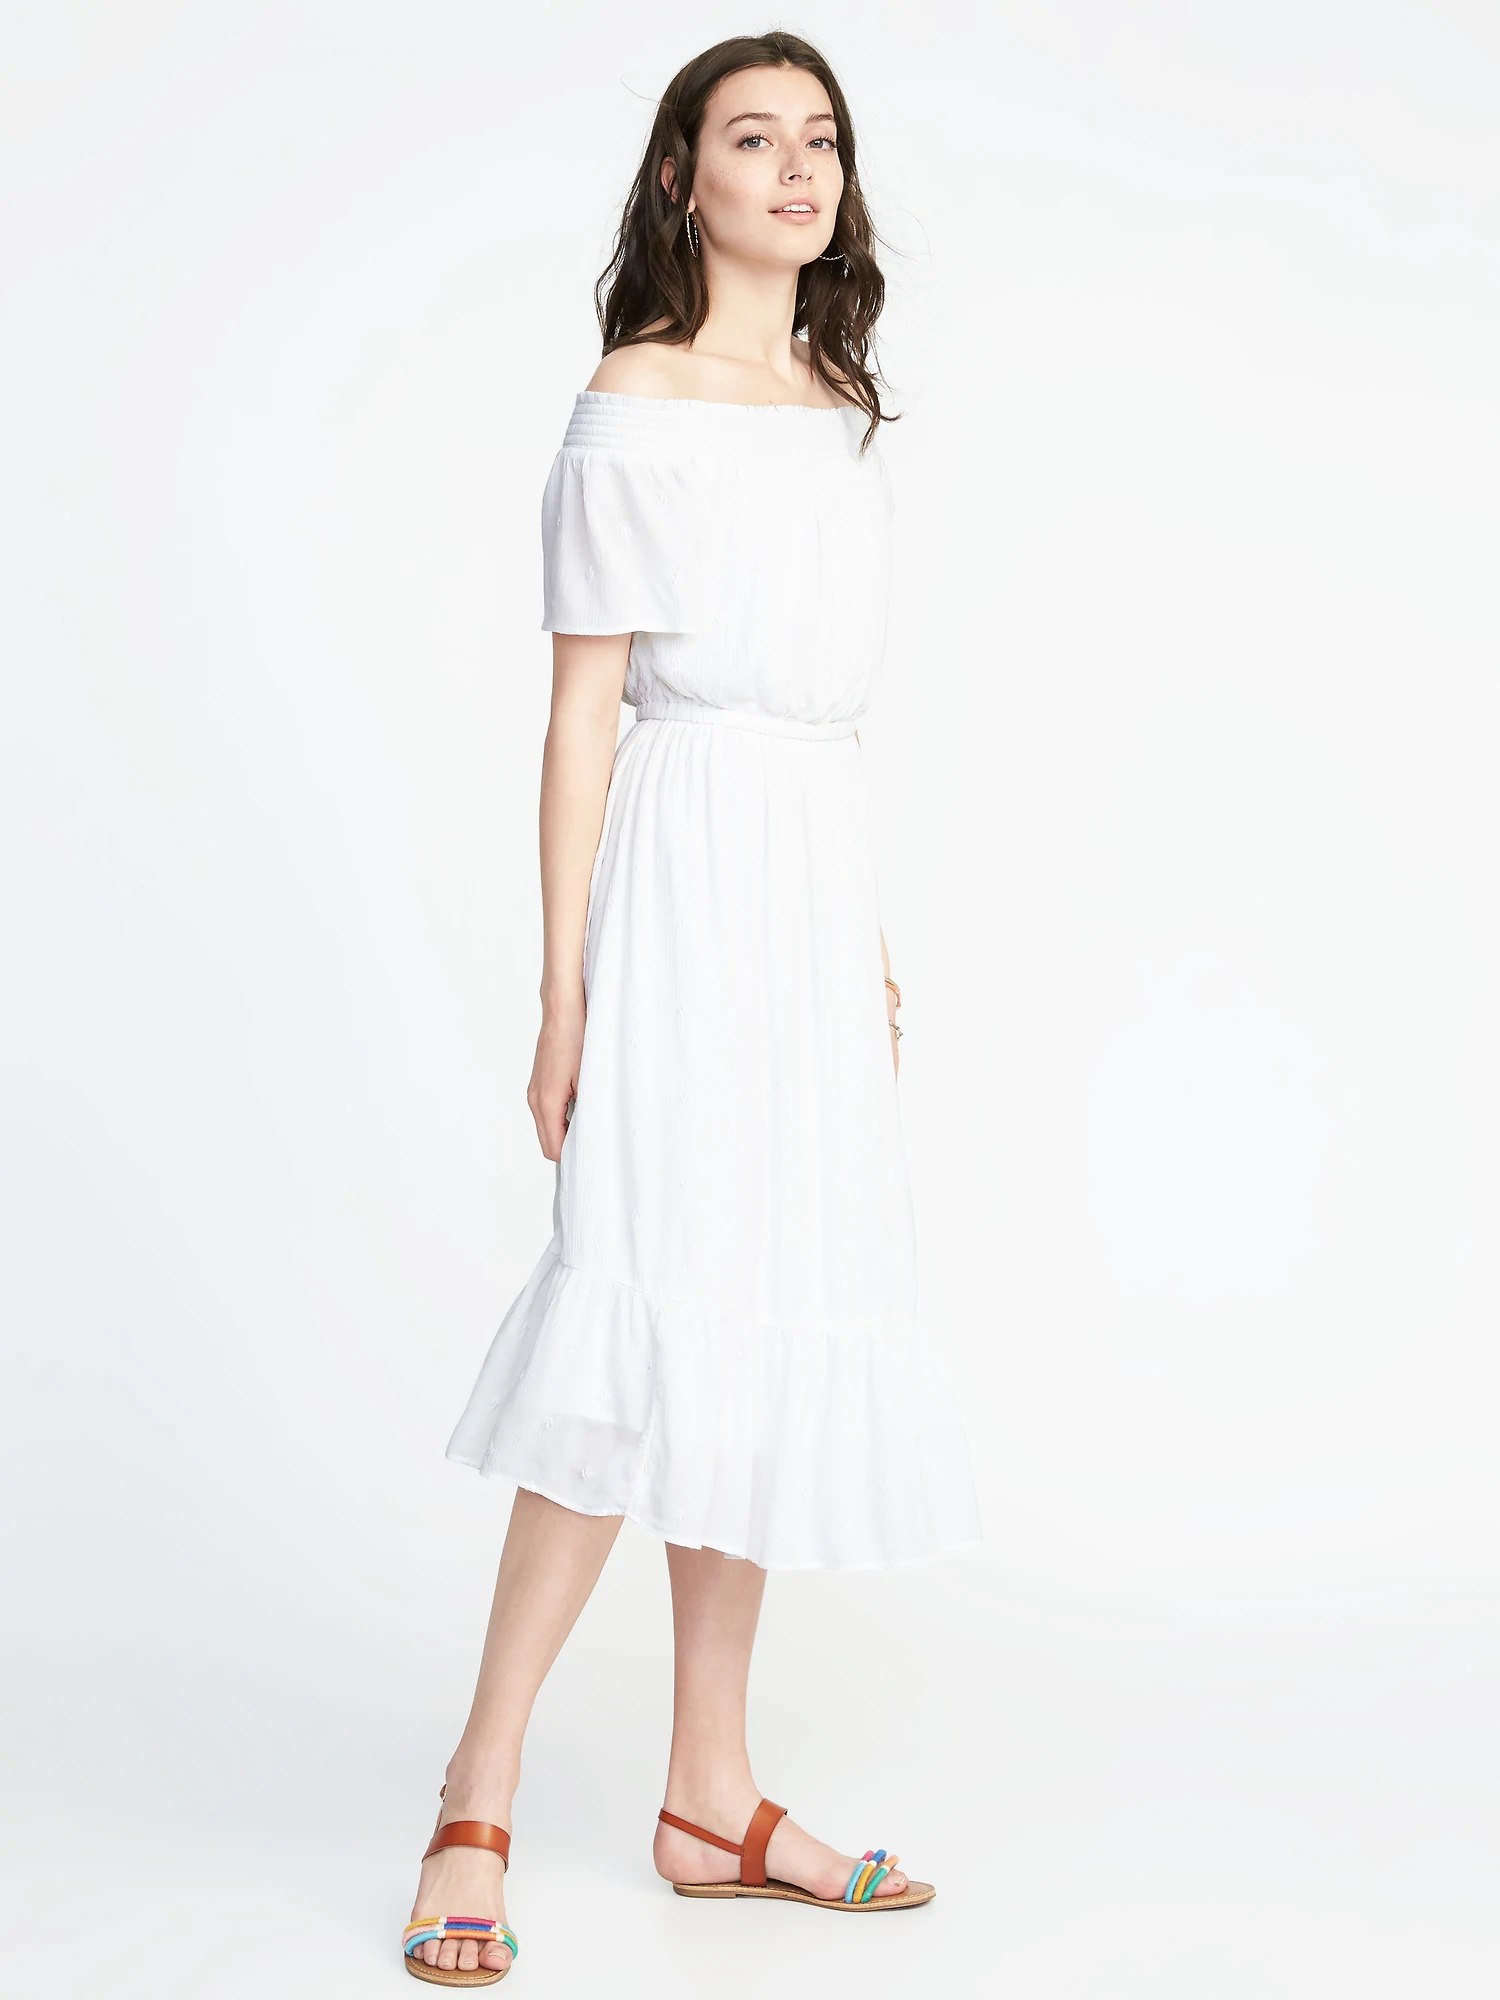 4750cf35ab Waist-defined Off-the-shoulder Crinkle-gauze Midi Dress. $49.99$25.78. Buy  Now Review It. At Old Navy